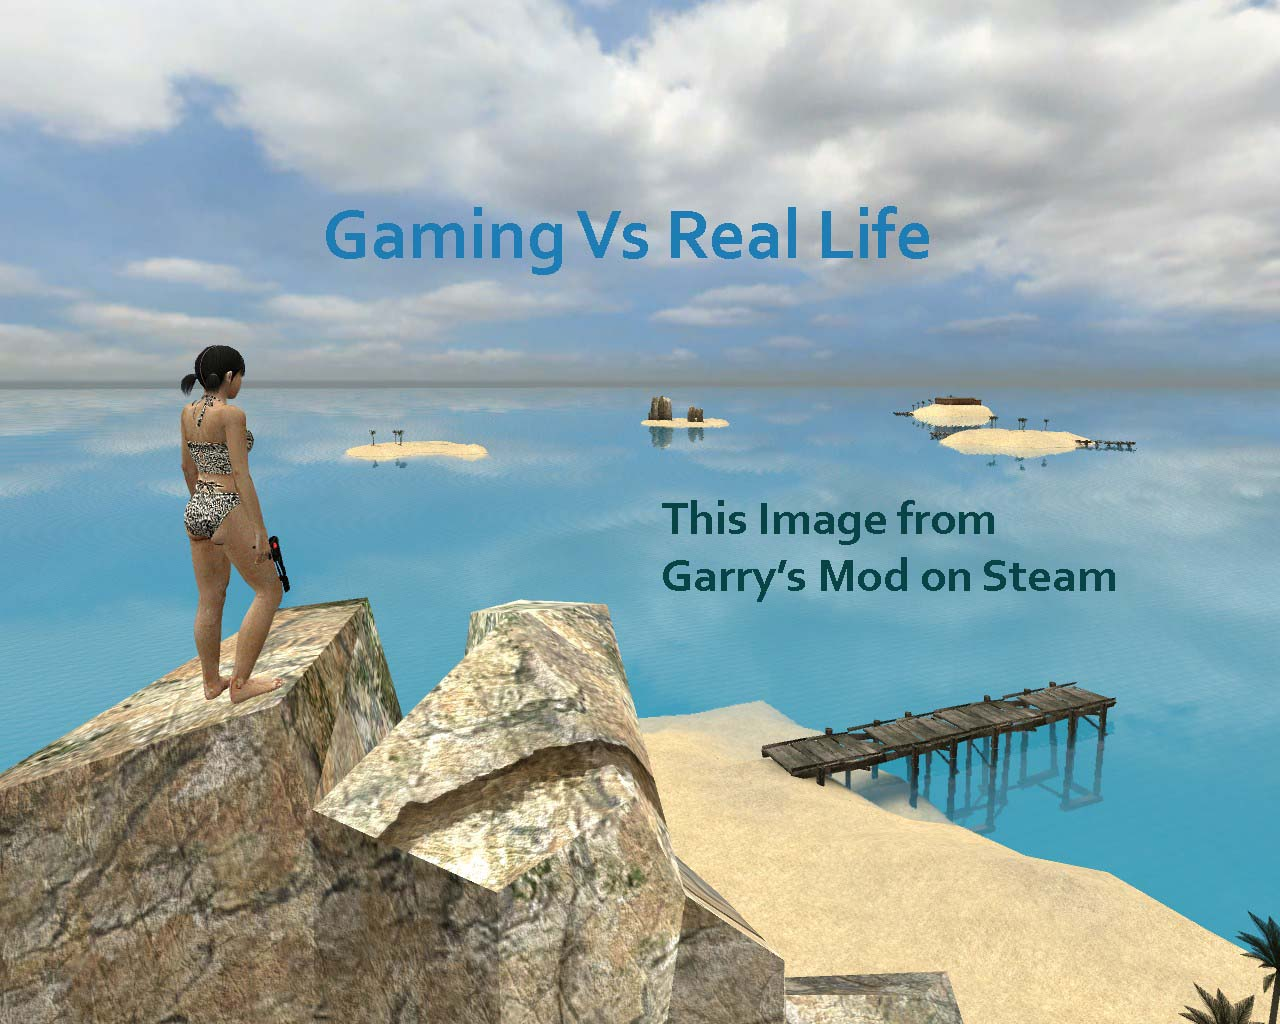 Gaming vs. Real Life – a discussion